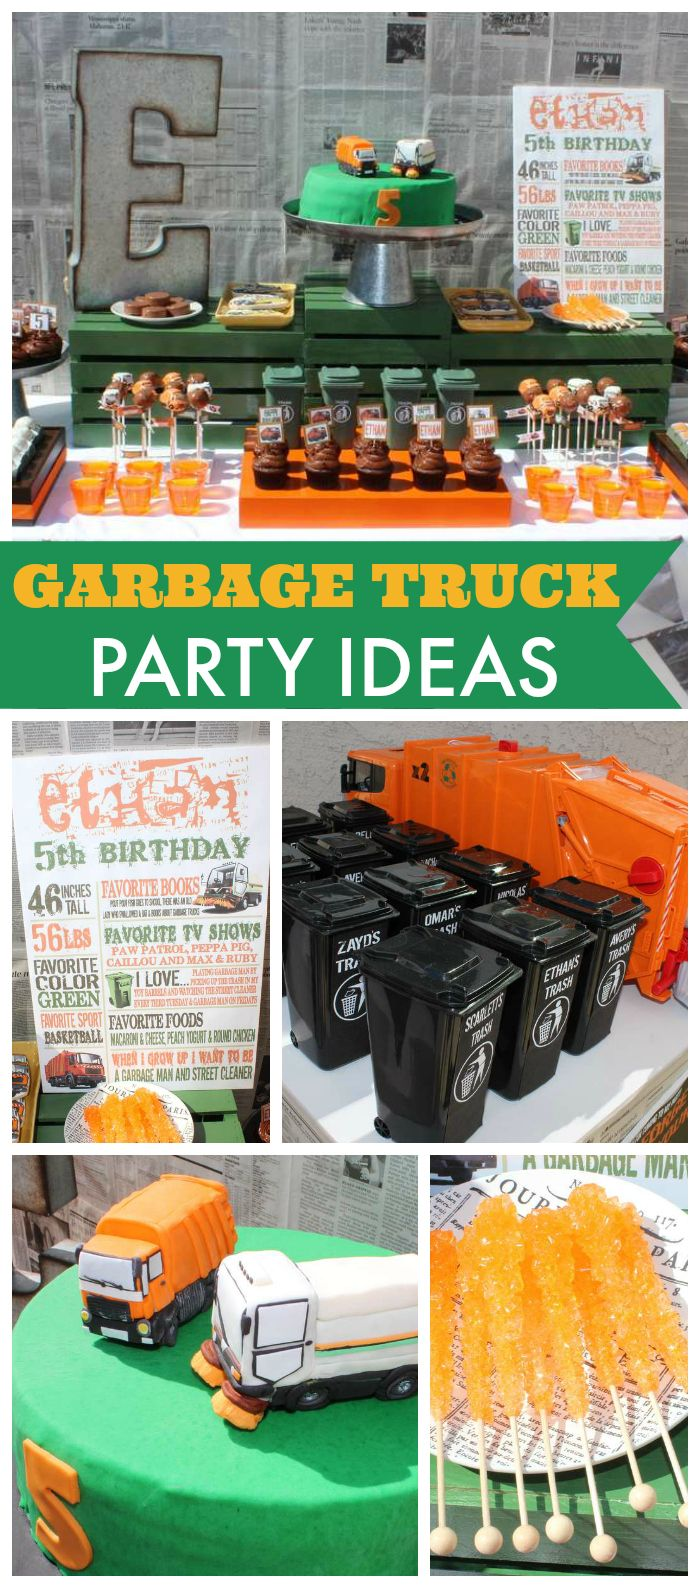 Get ready garbage truck coloring book - A Garbage Truck Boy Birthday Party With Mini Garbage Can Favors And Custom Made Garbage Trucks